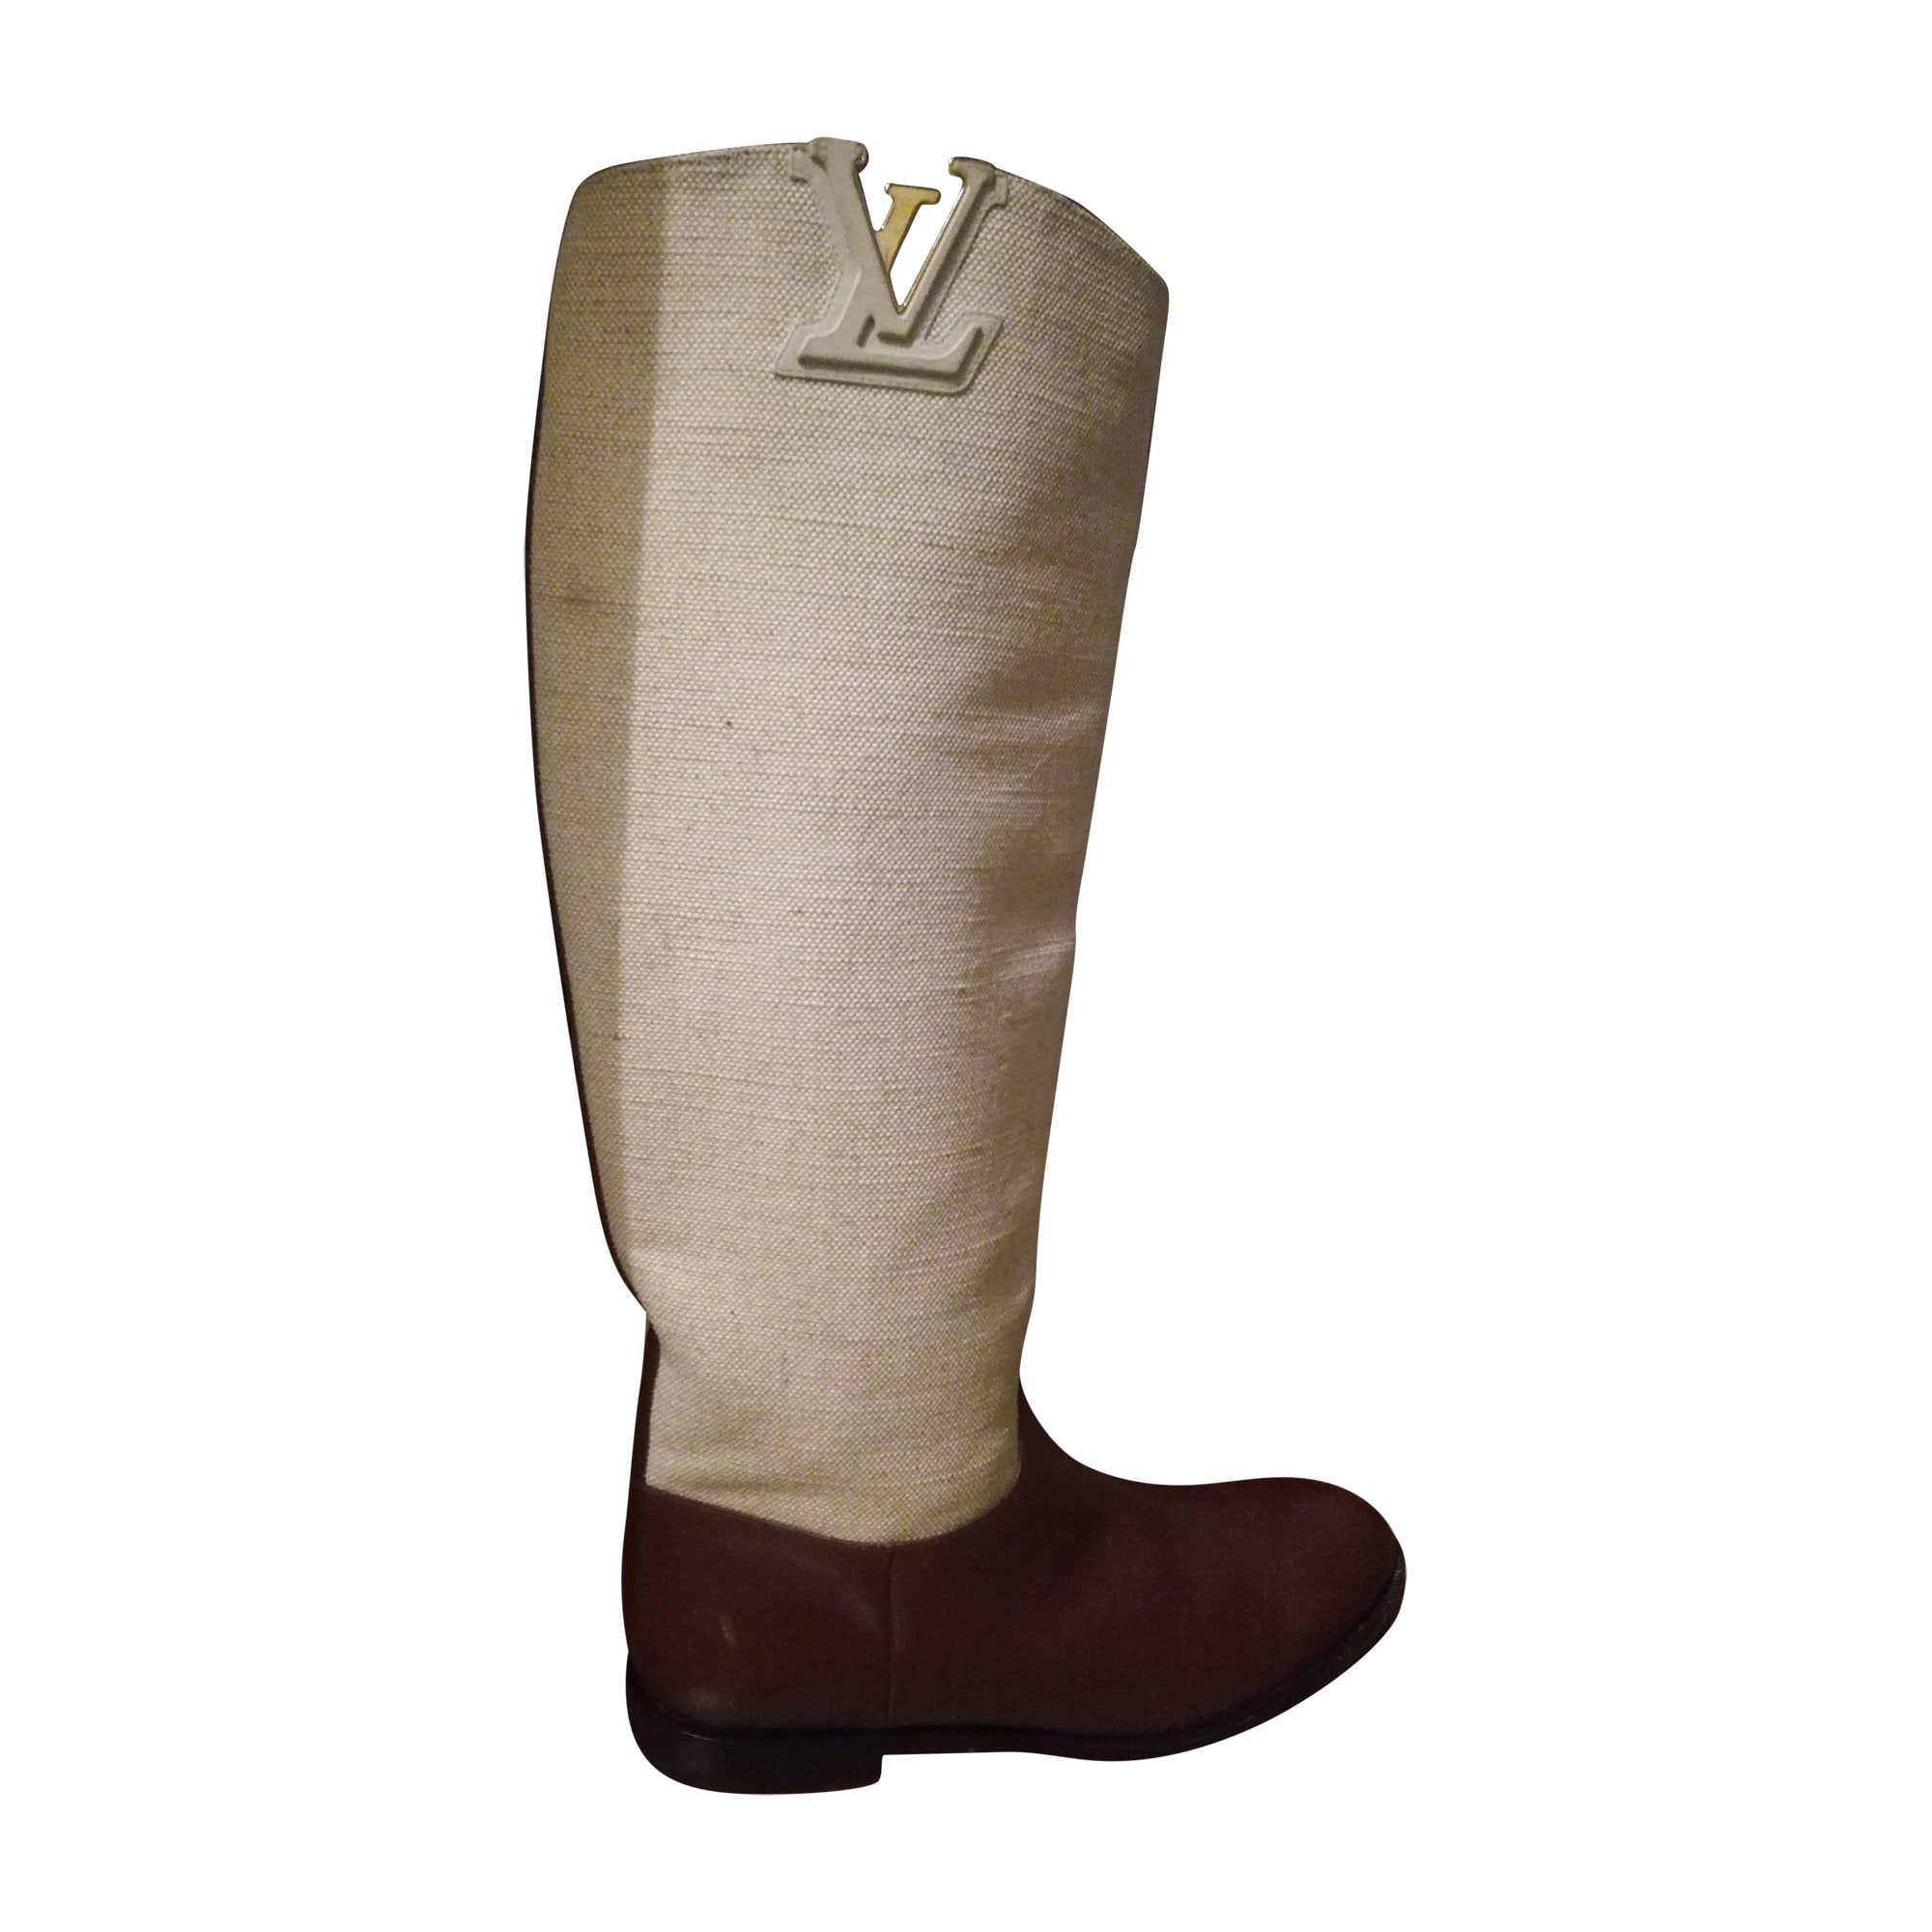 638fa9f9f471 Riding Boots LOUIS VUITTON 39 brown - 7506166